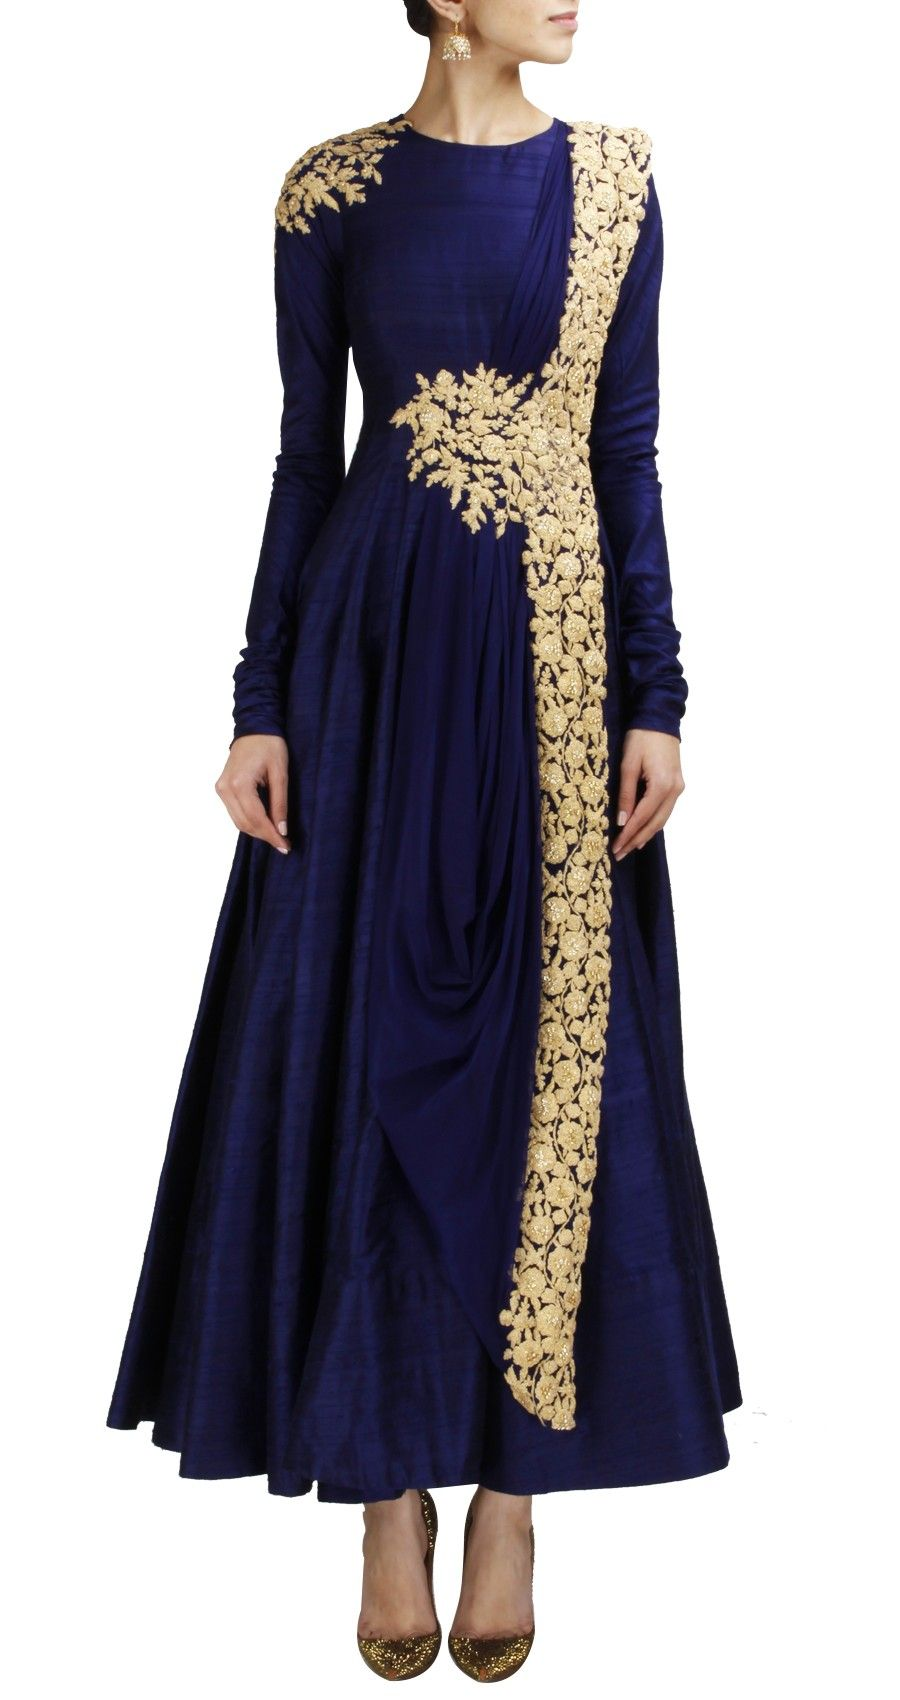 4888985fa2 Buy Latest Designer Dresses, Latest Designer Sarees, Salwar Kameez,  Jewellery, Handbags, Purses, Accessories Online from top Indian Designers  from Pernia's ...